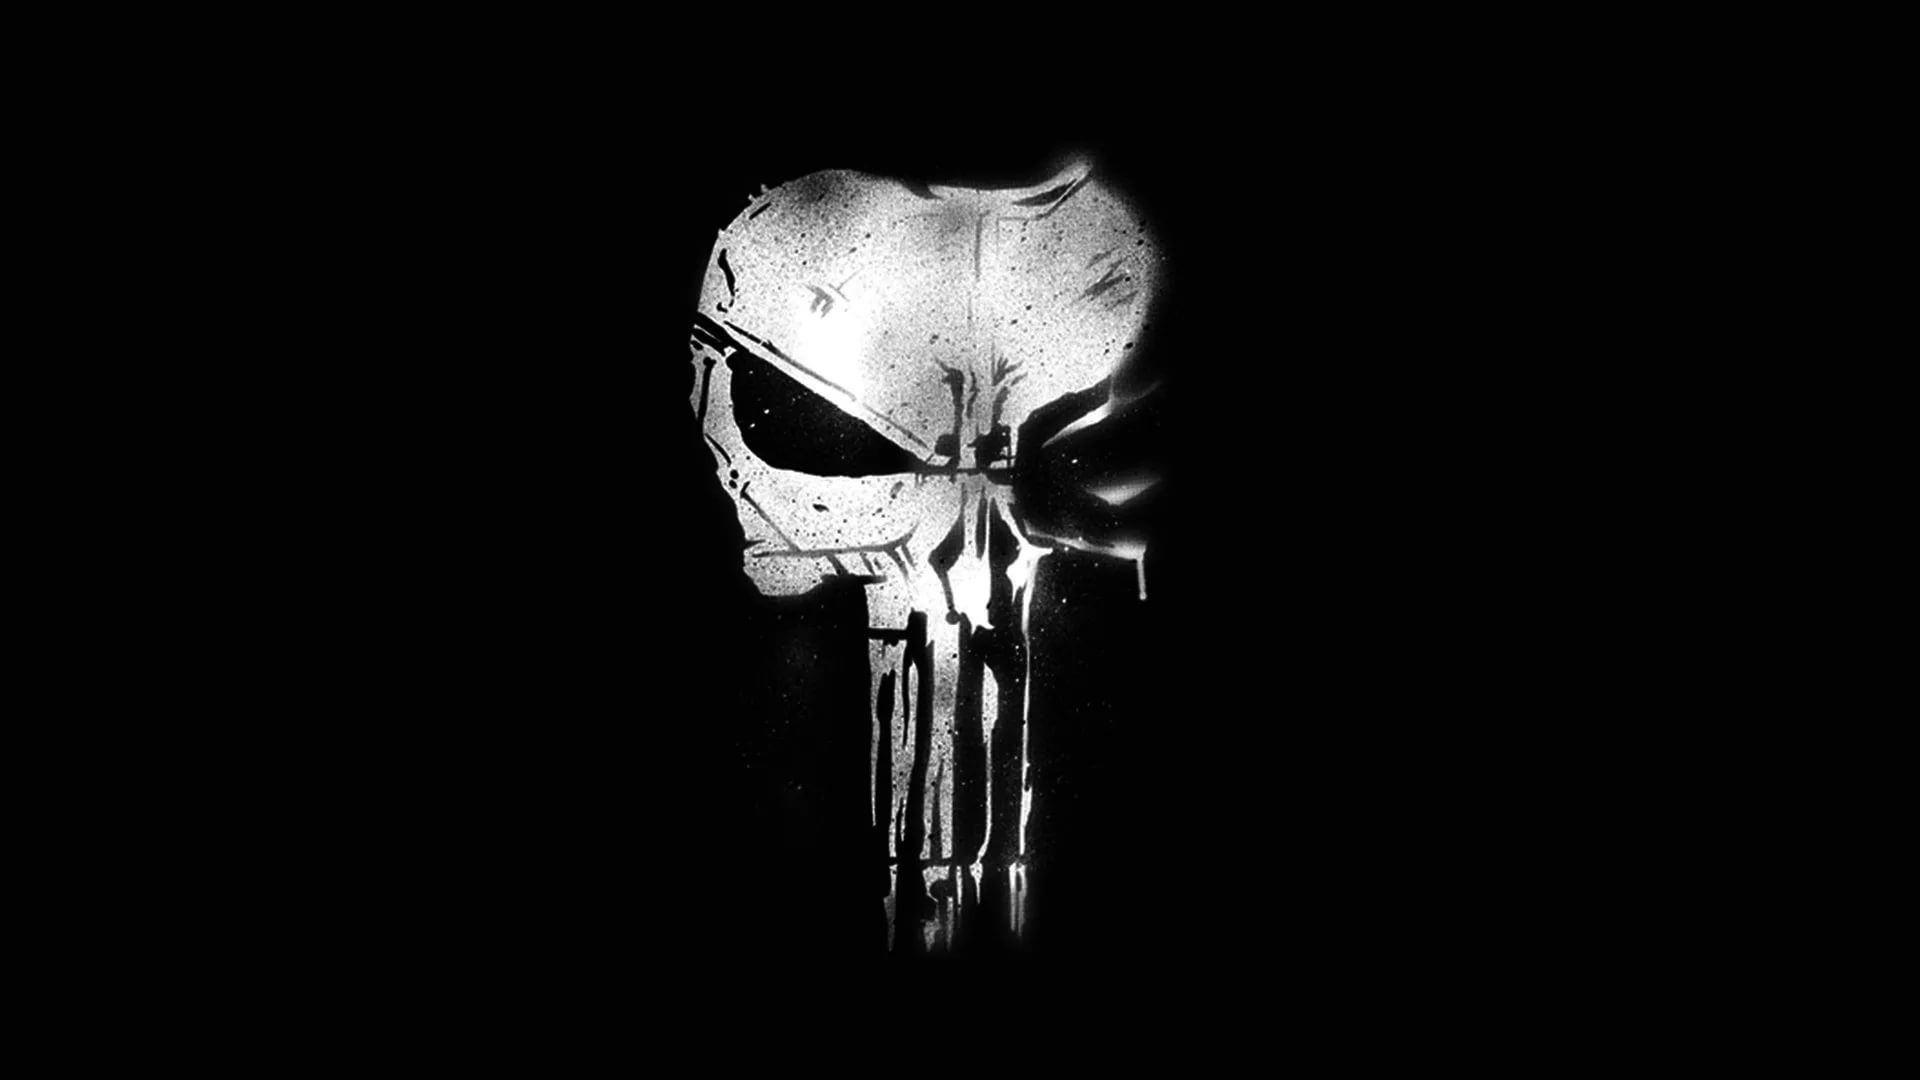 The Best Website for Download The Skull Wallpaper